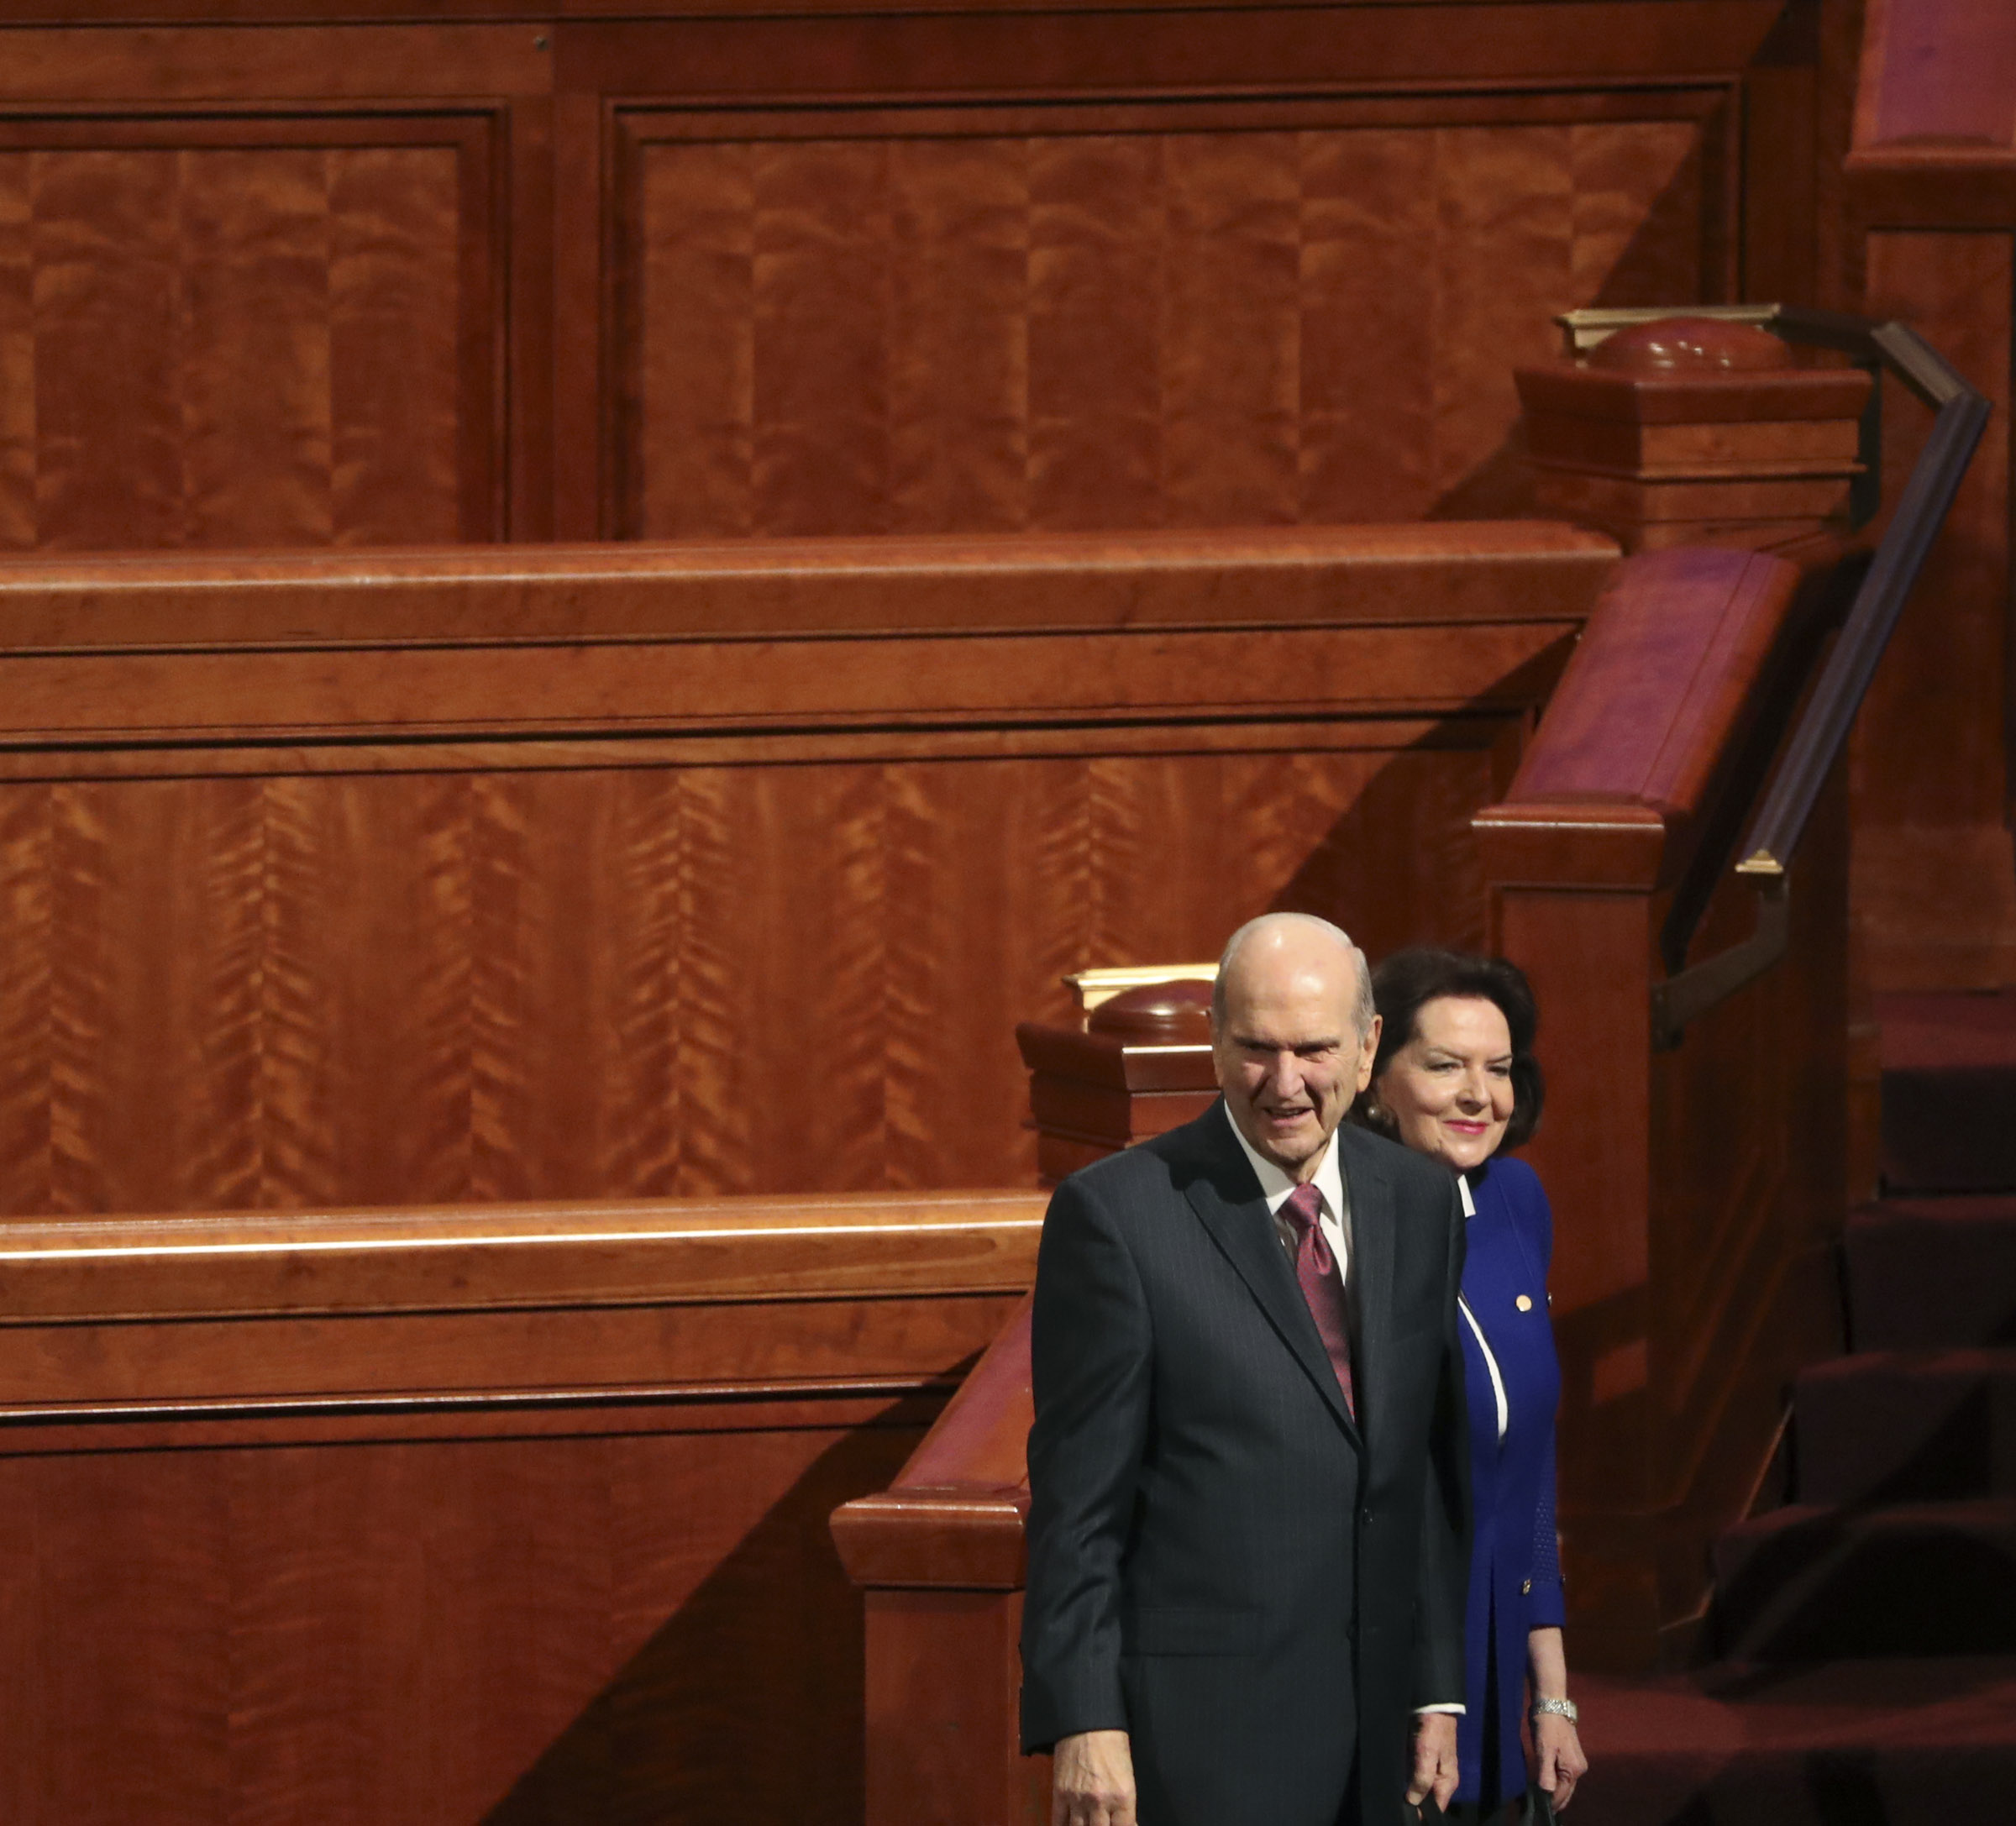 President Russell M. Nelson and his wife, Sister Wendy Watson Nelson, look back at the audience as they leave the Conference Center following the morning session of general conference in Salt Lake City on Saturday, April 6, 2019.